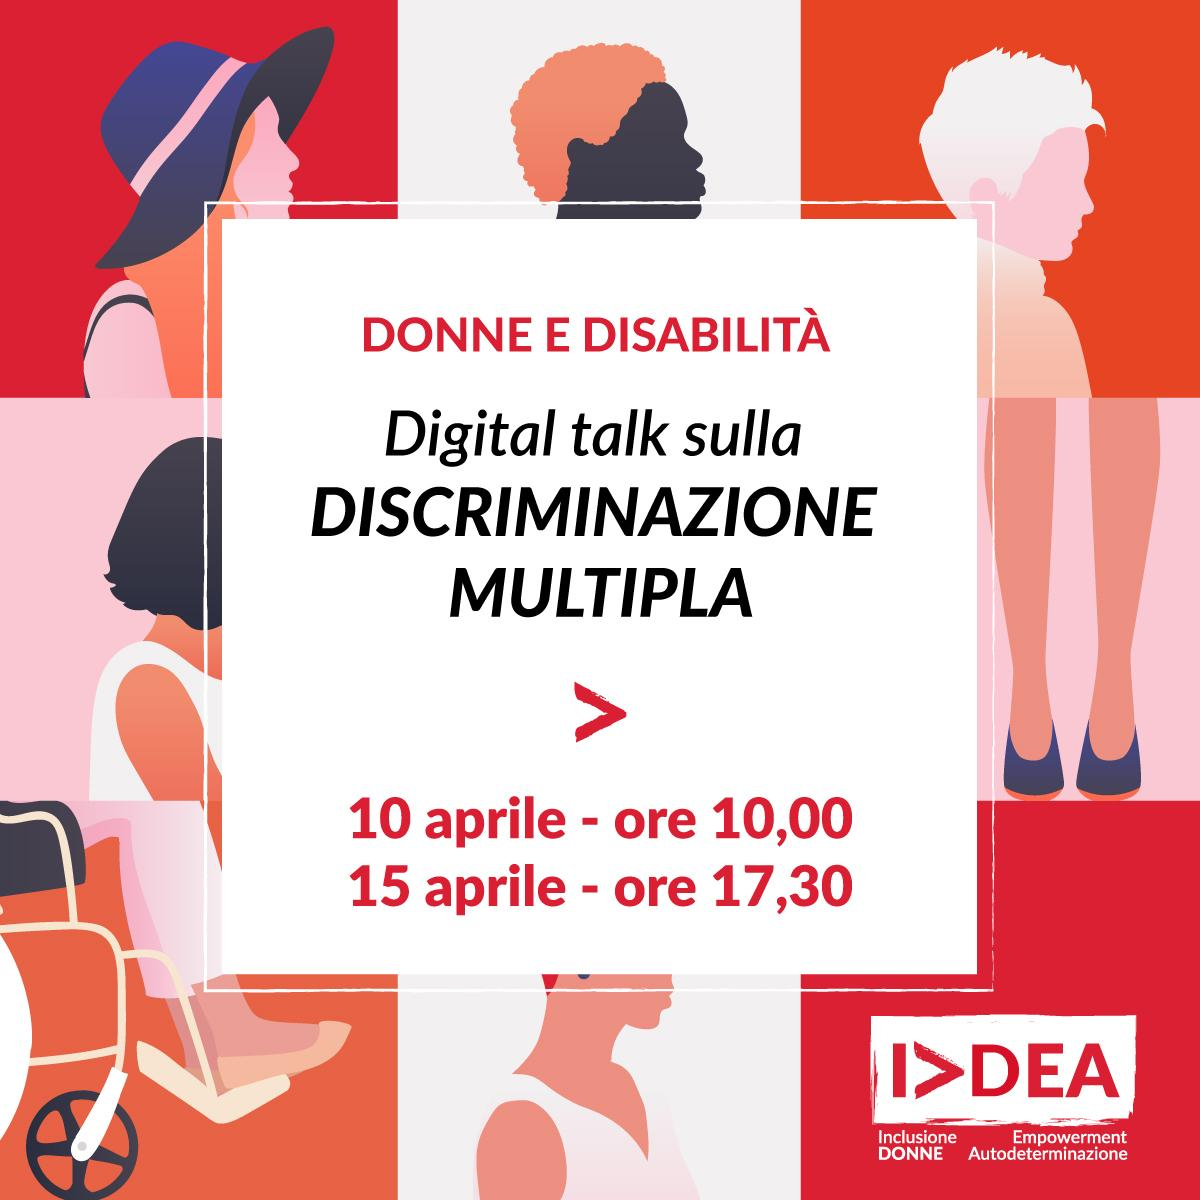 Idea - digital talk